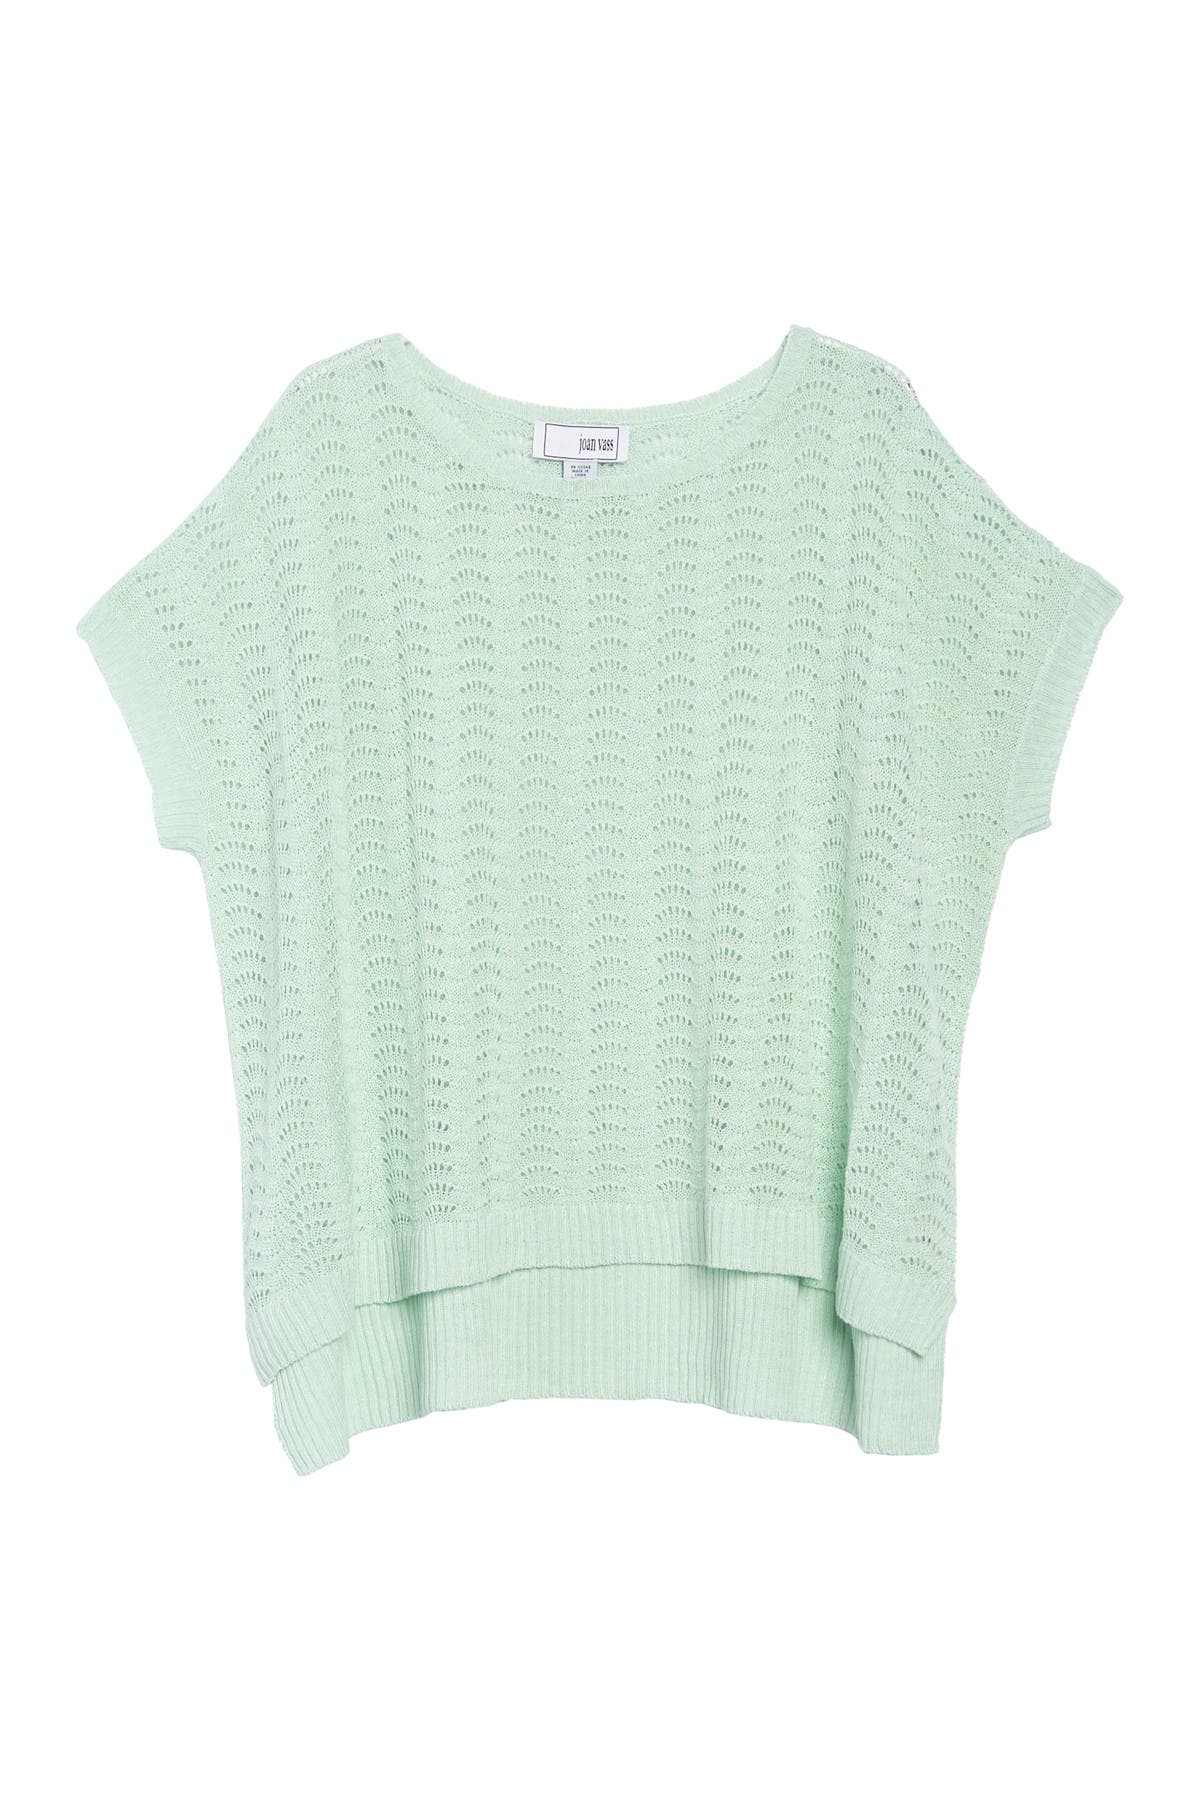 Image of Joan Vass Waffle Knit Boat Neck Top